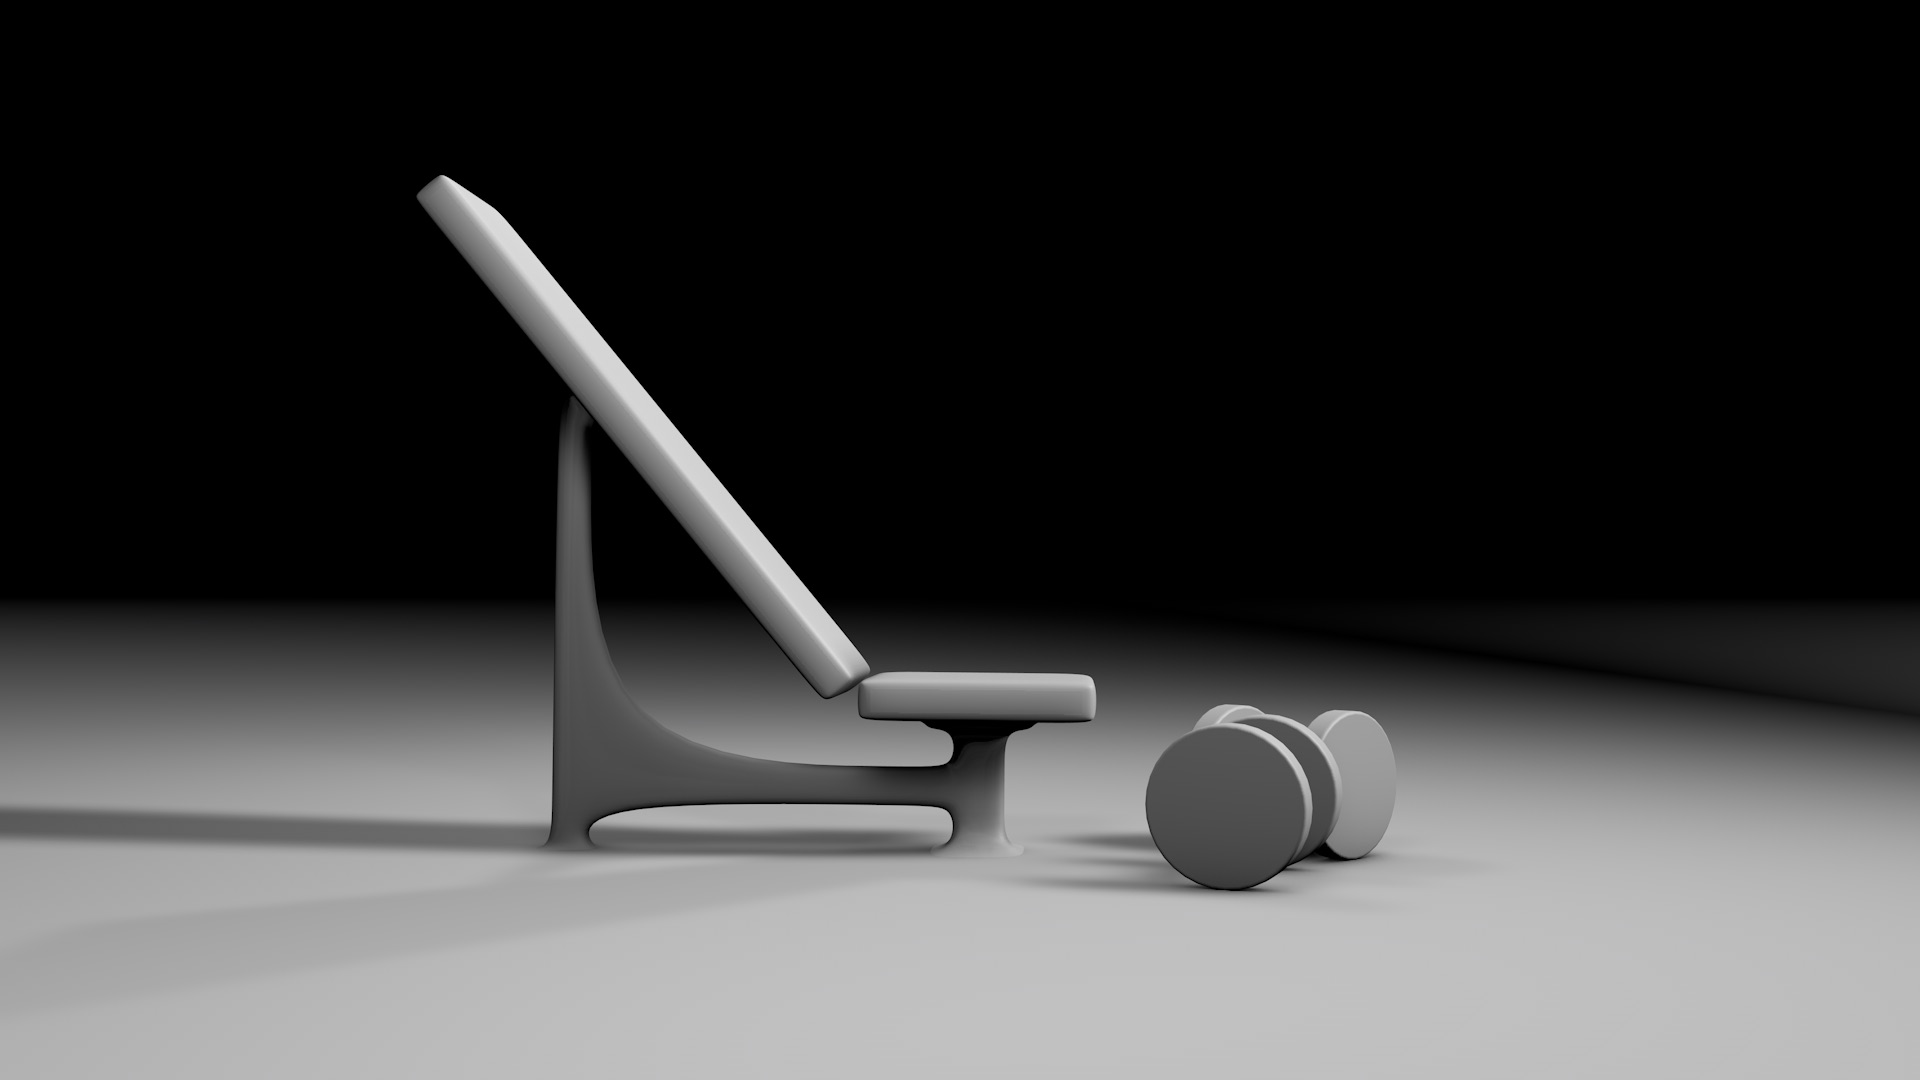 3D model of a bench and two dumbbells from the side